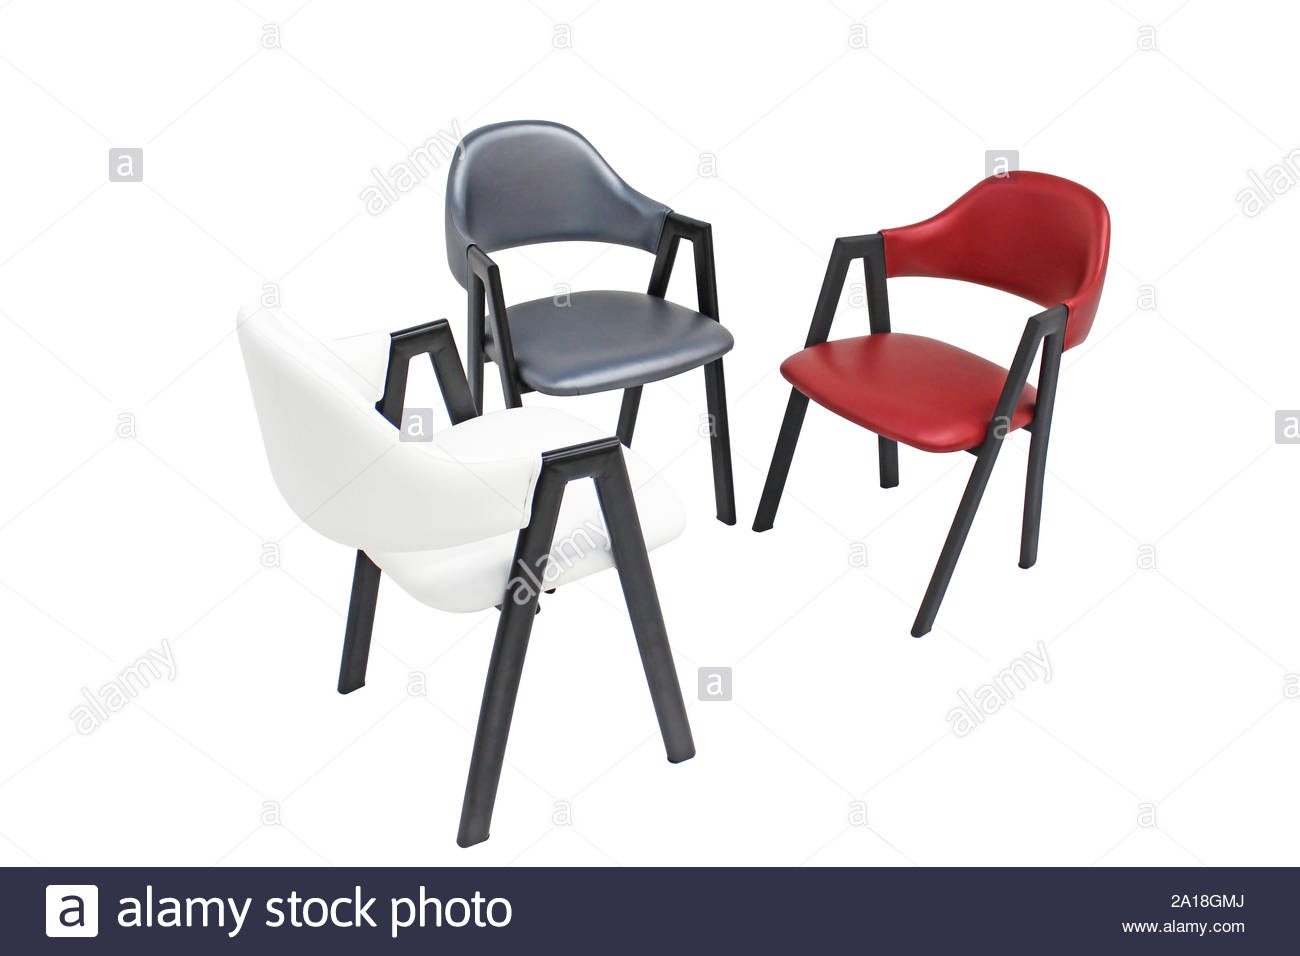 Marvelous Dining Chair Isolated Metal Upholstered Armchair Design For Pdpeps Interior Chair Design Pdpepsorg